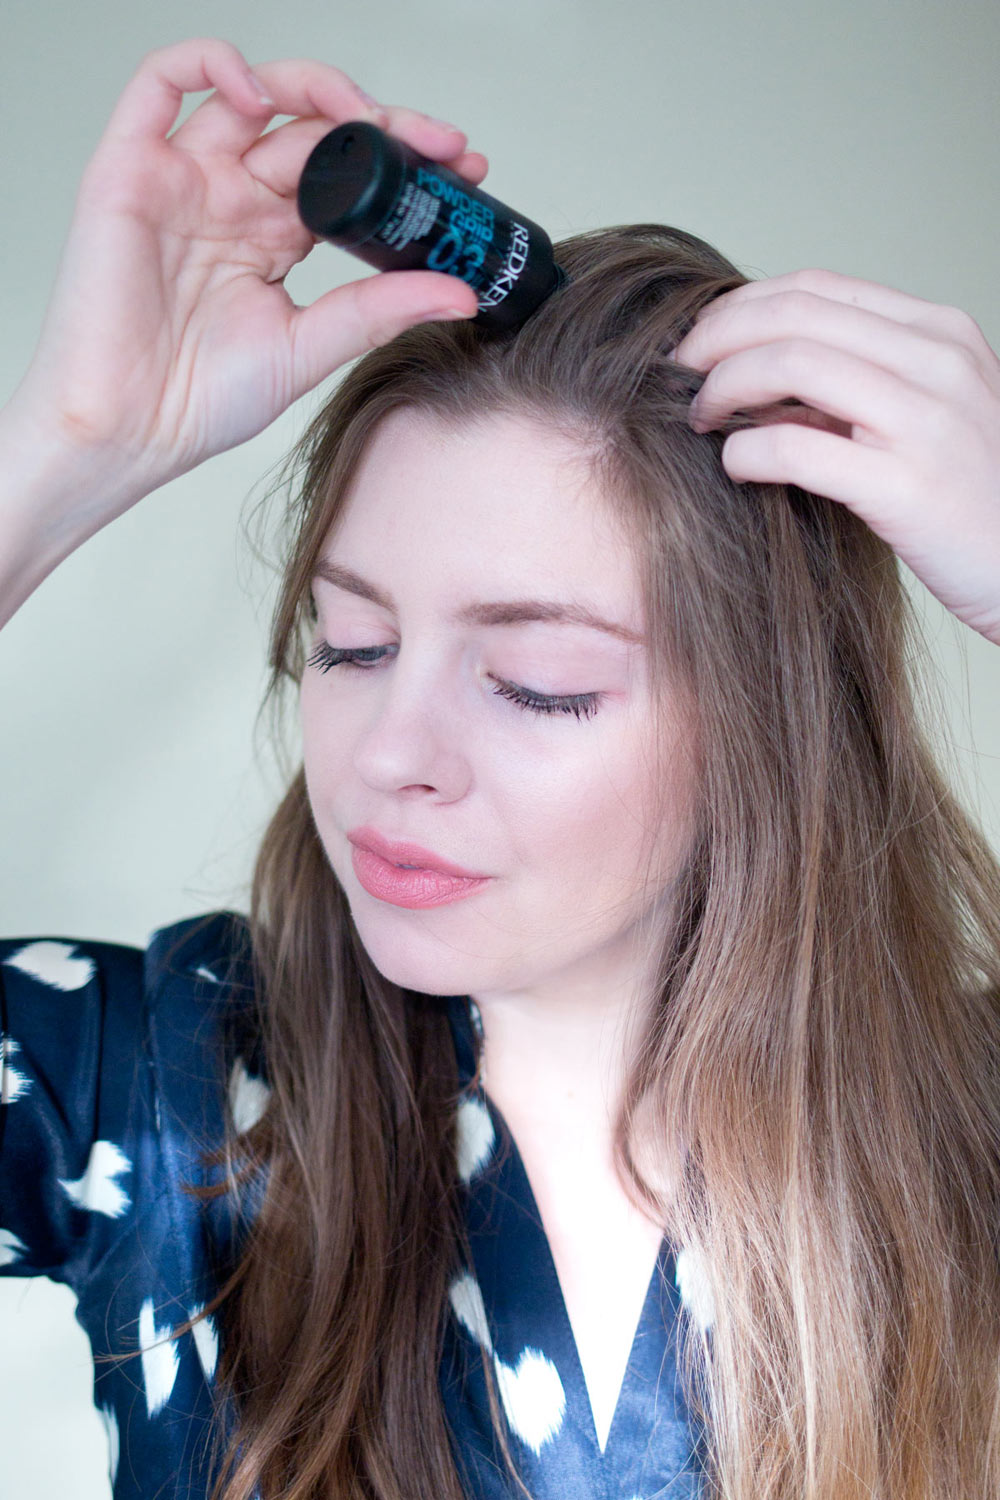 Redken Mattifying Hair Powder Powder Grip Review // Hello RIgby Seattle Beauty & Hair Blog